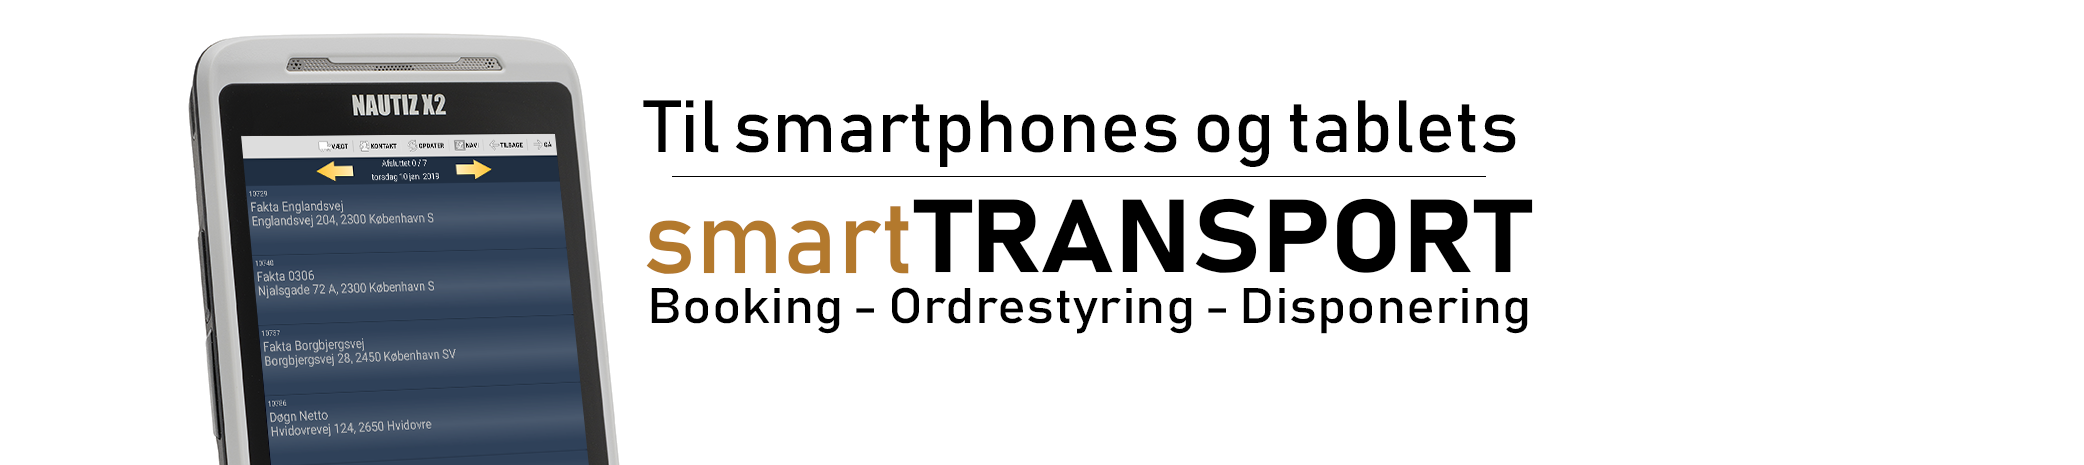 Smarttransport2